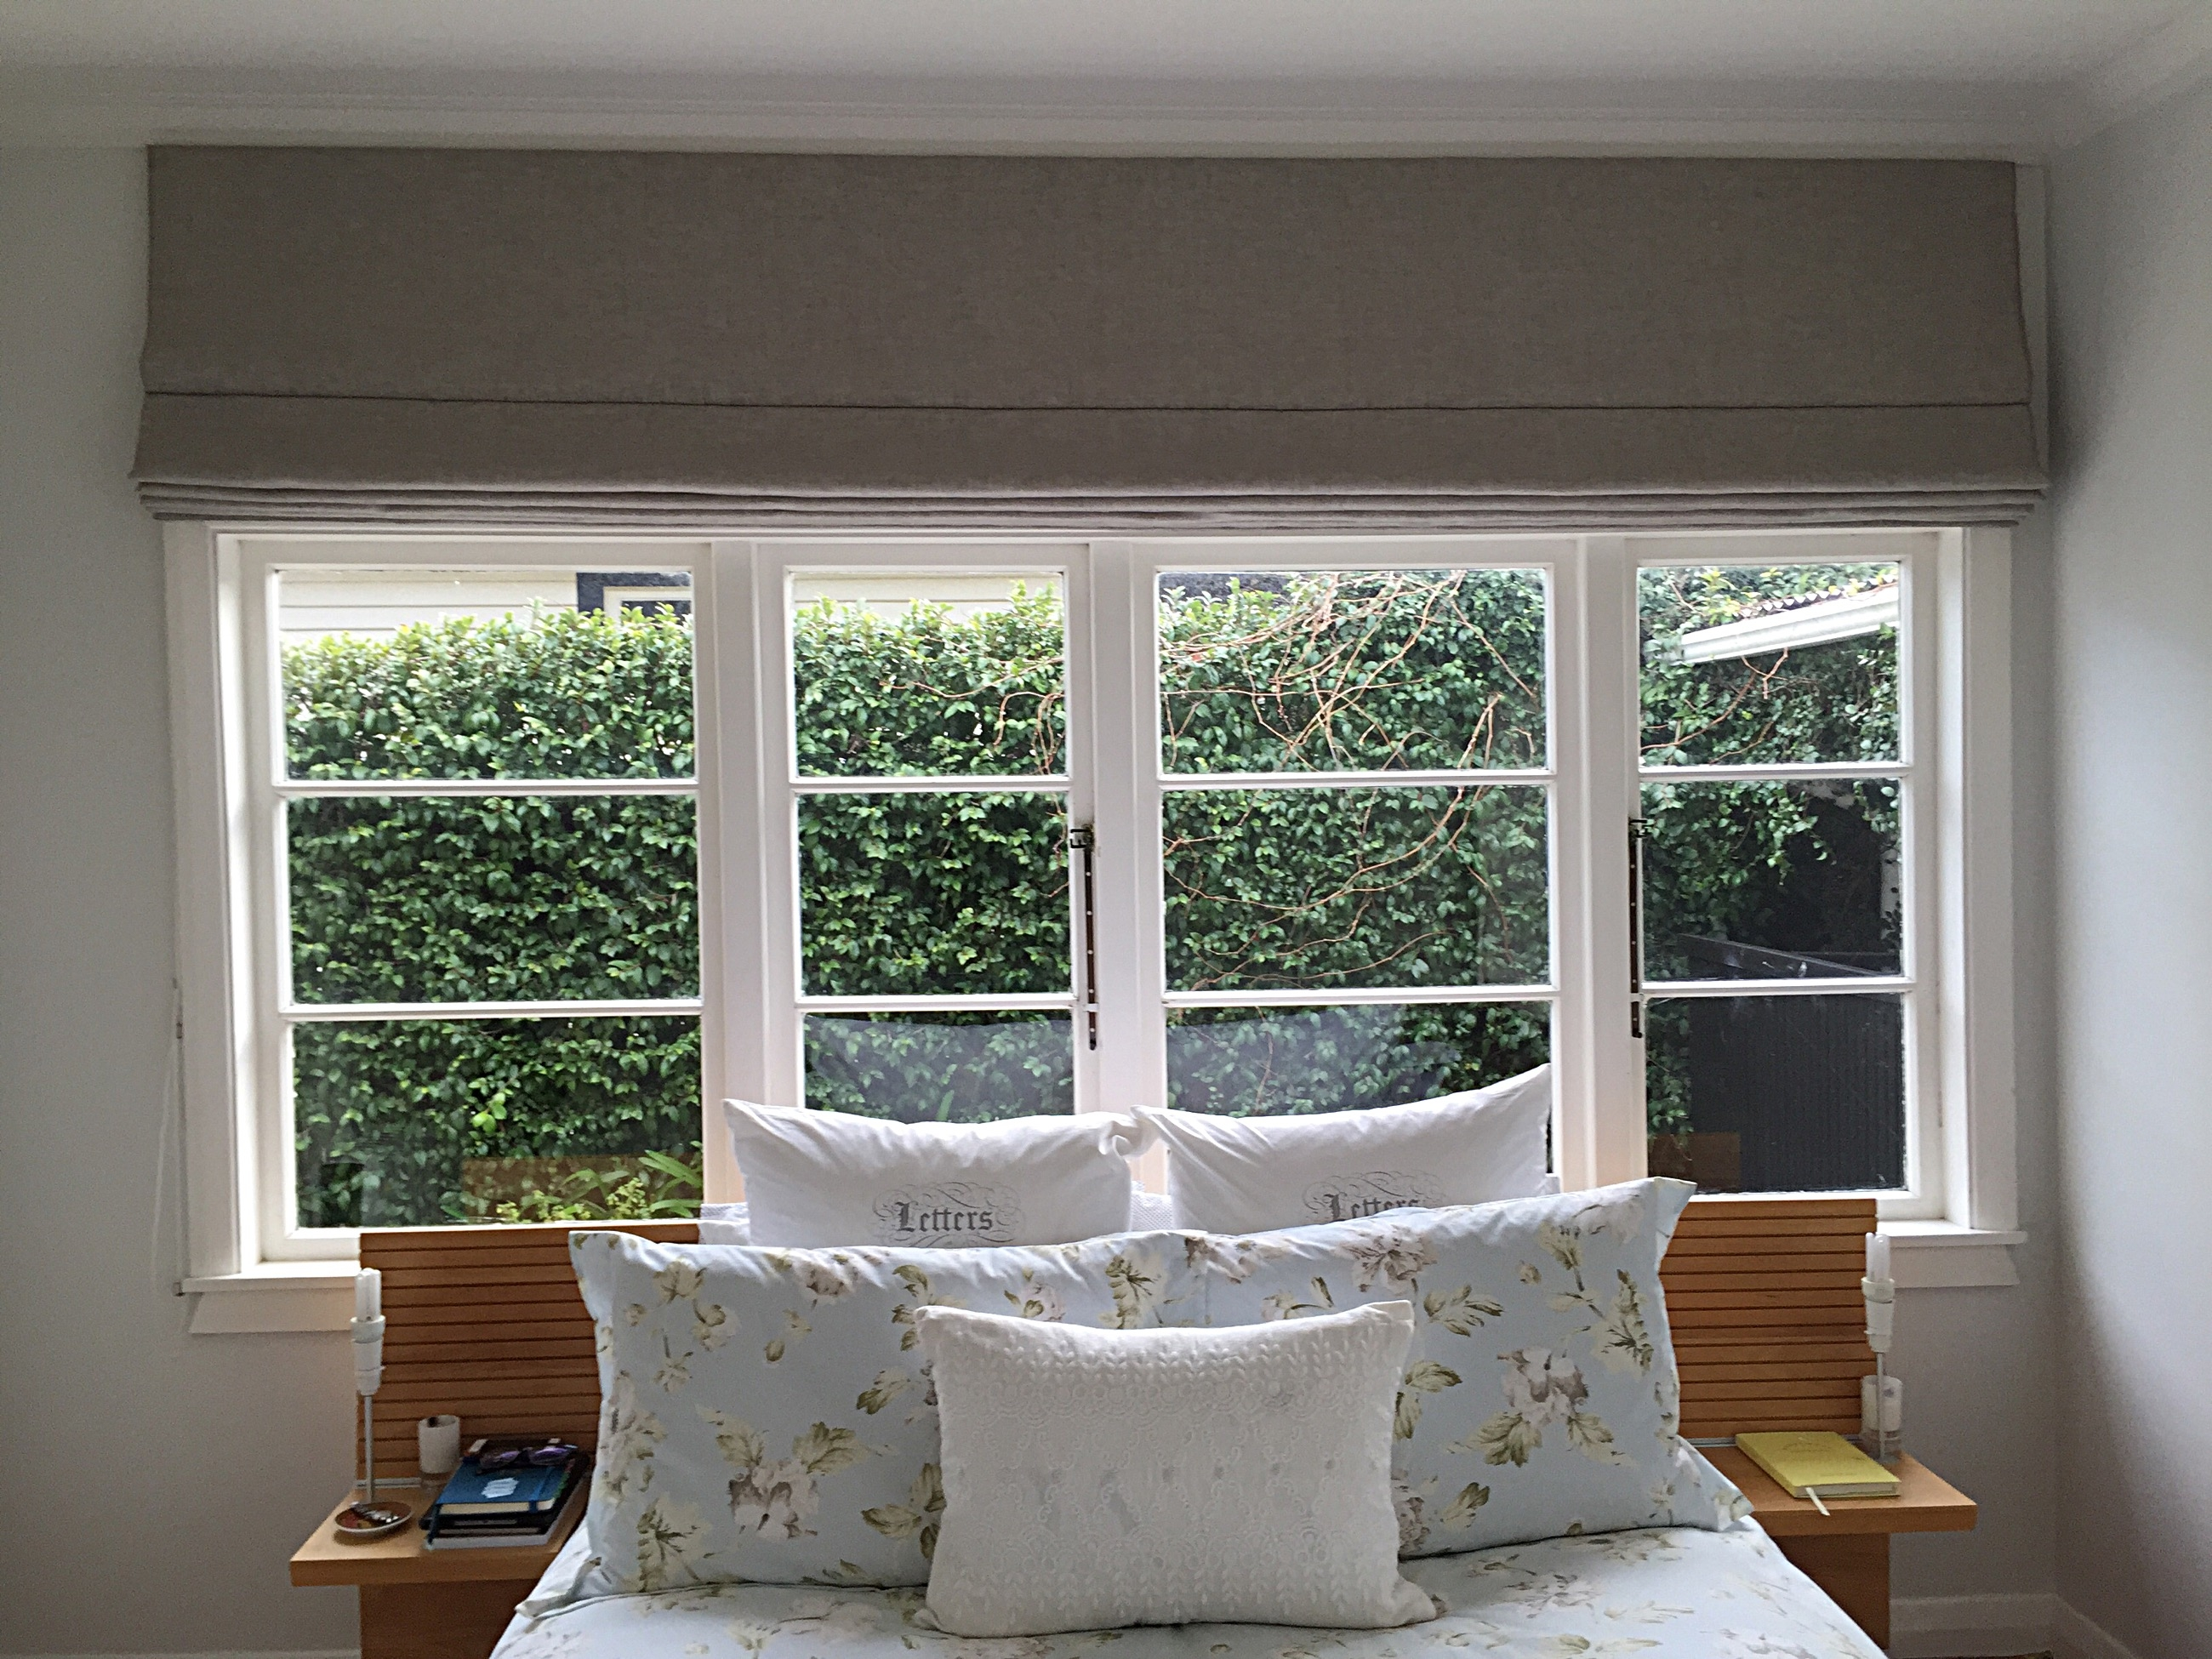 Bedroom Blinds Nz Bedroom Design With Linen Roller Blinds (Image 5 of 15)